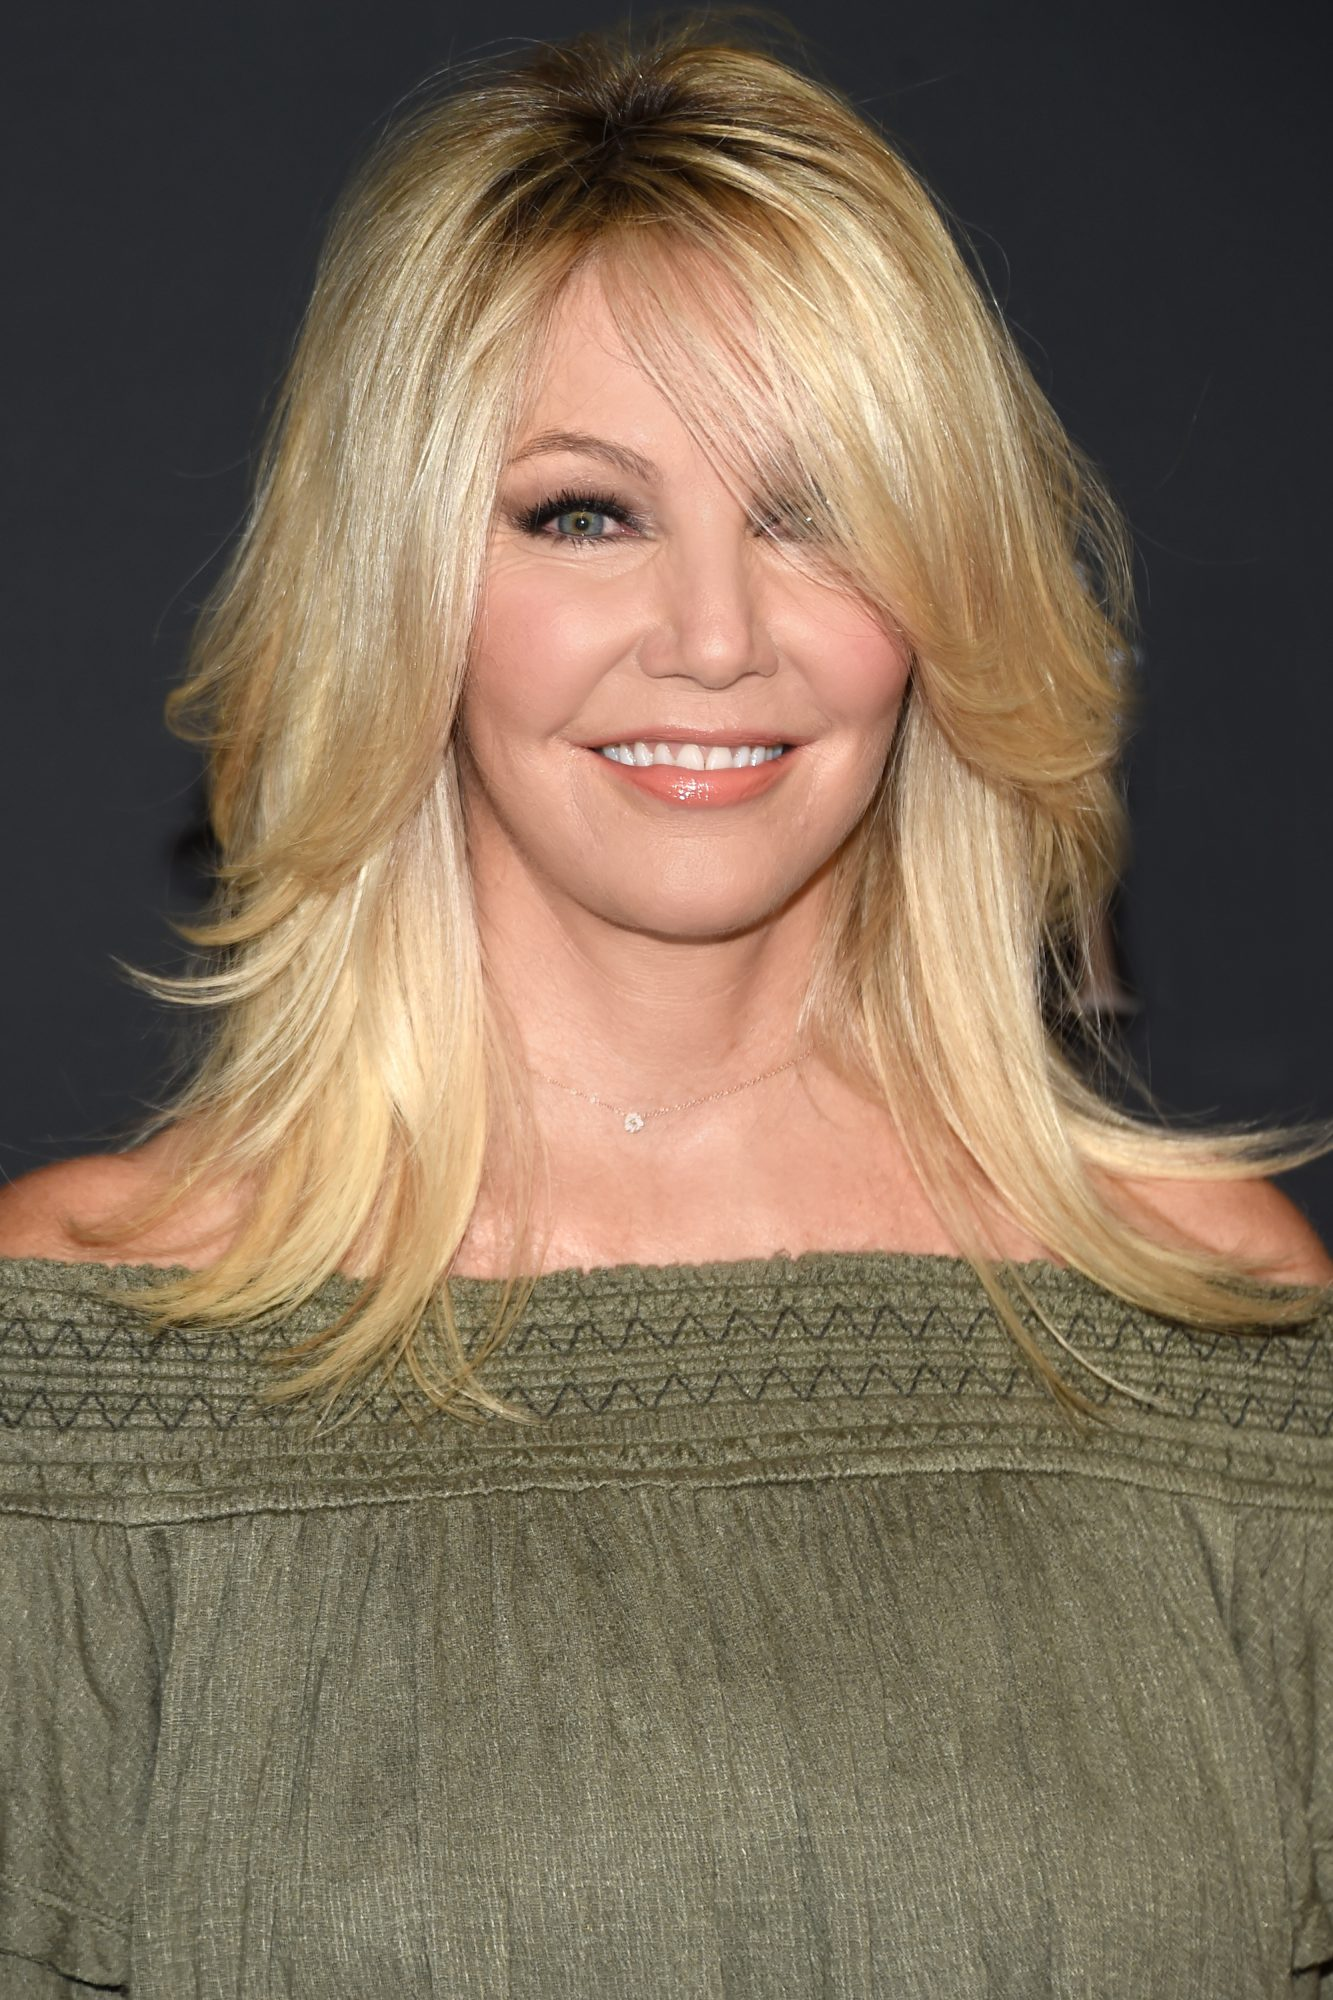 Heather Locklear Has Been Hospitalized After a Car Accident